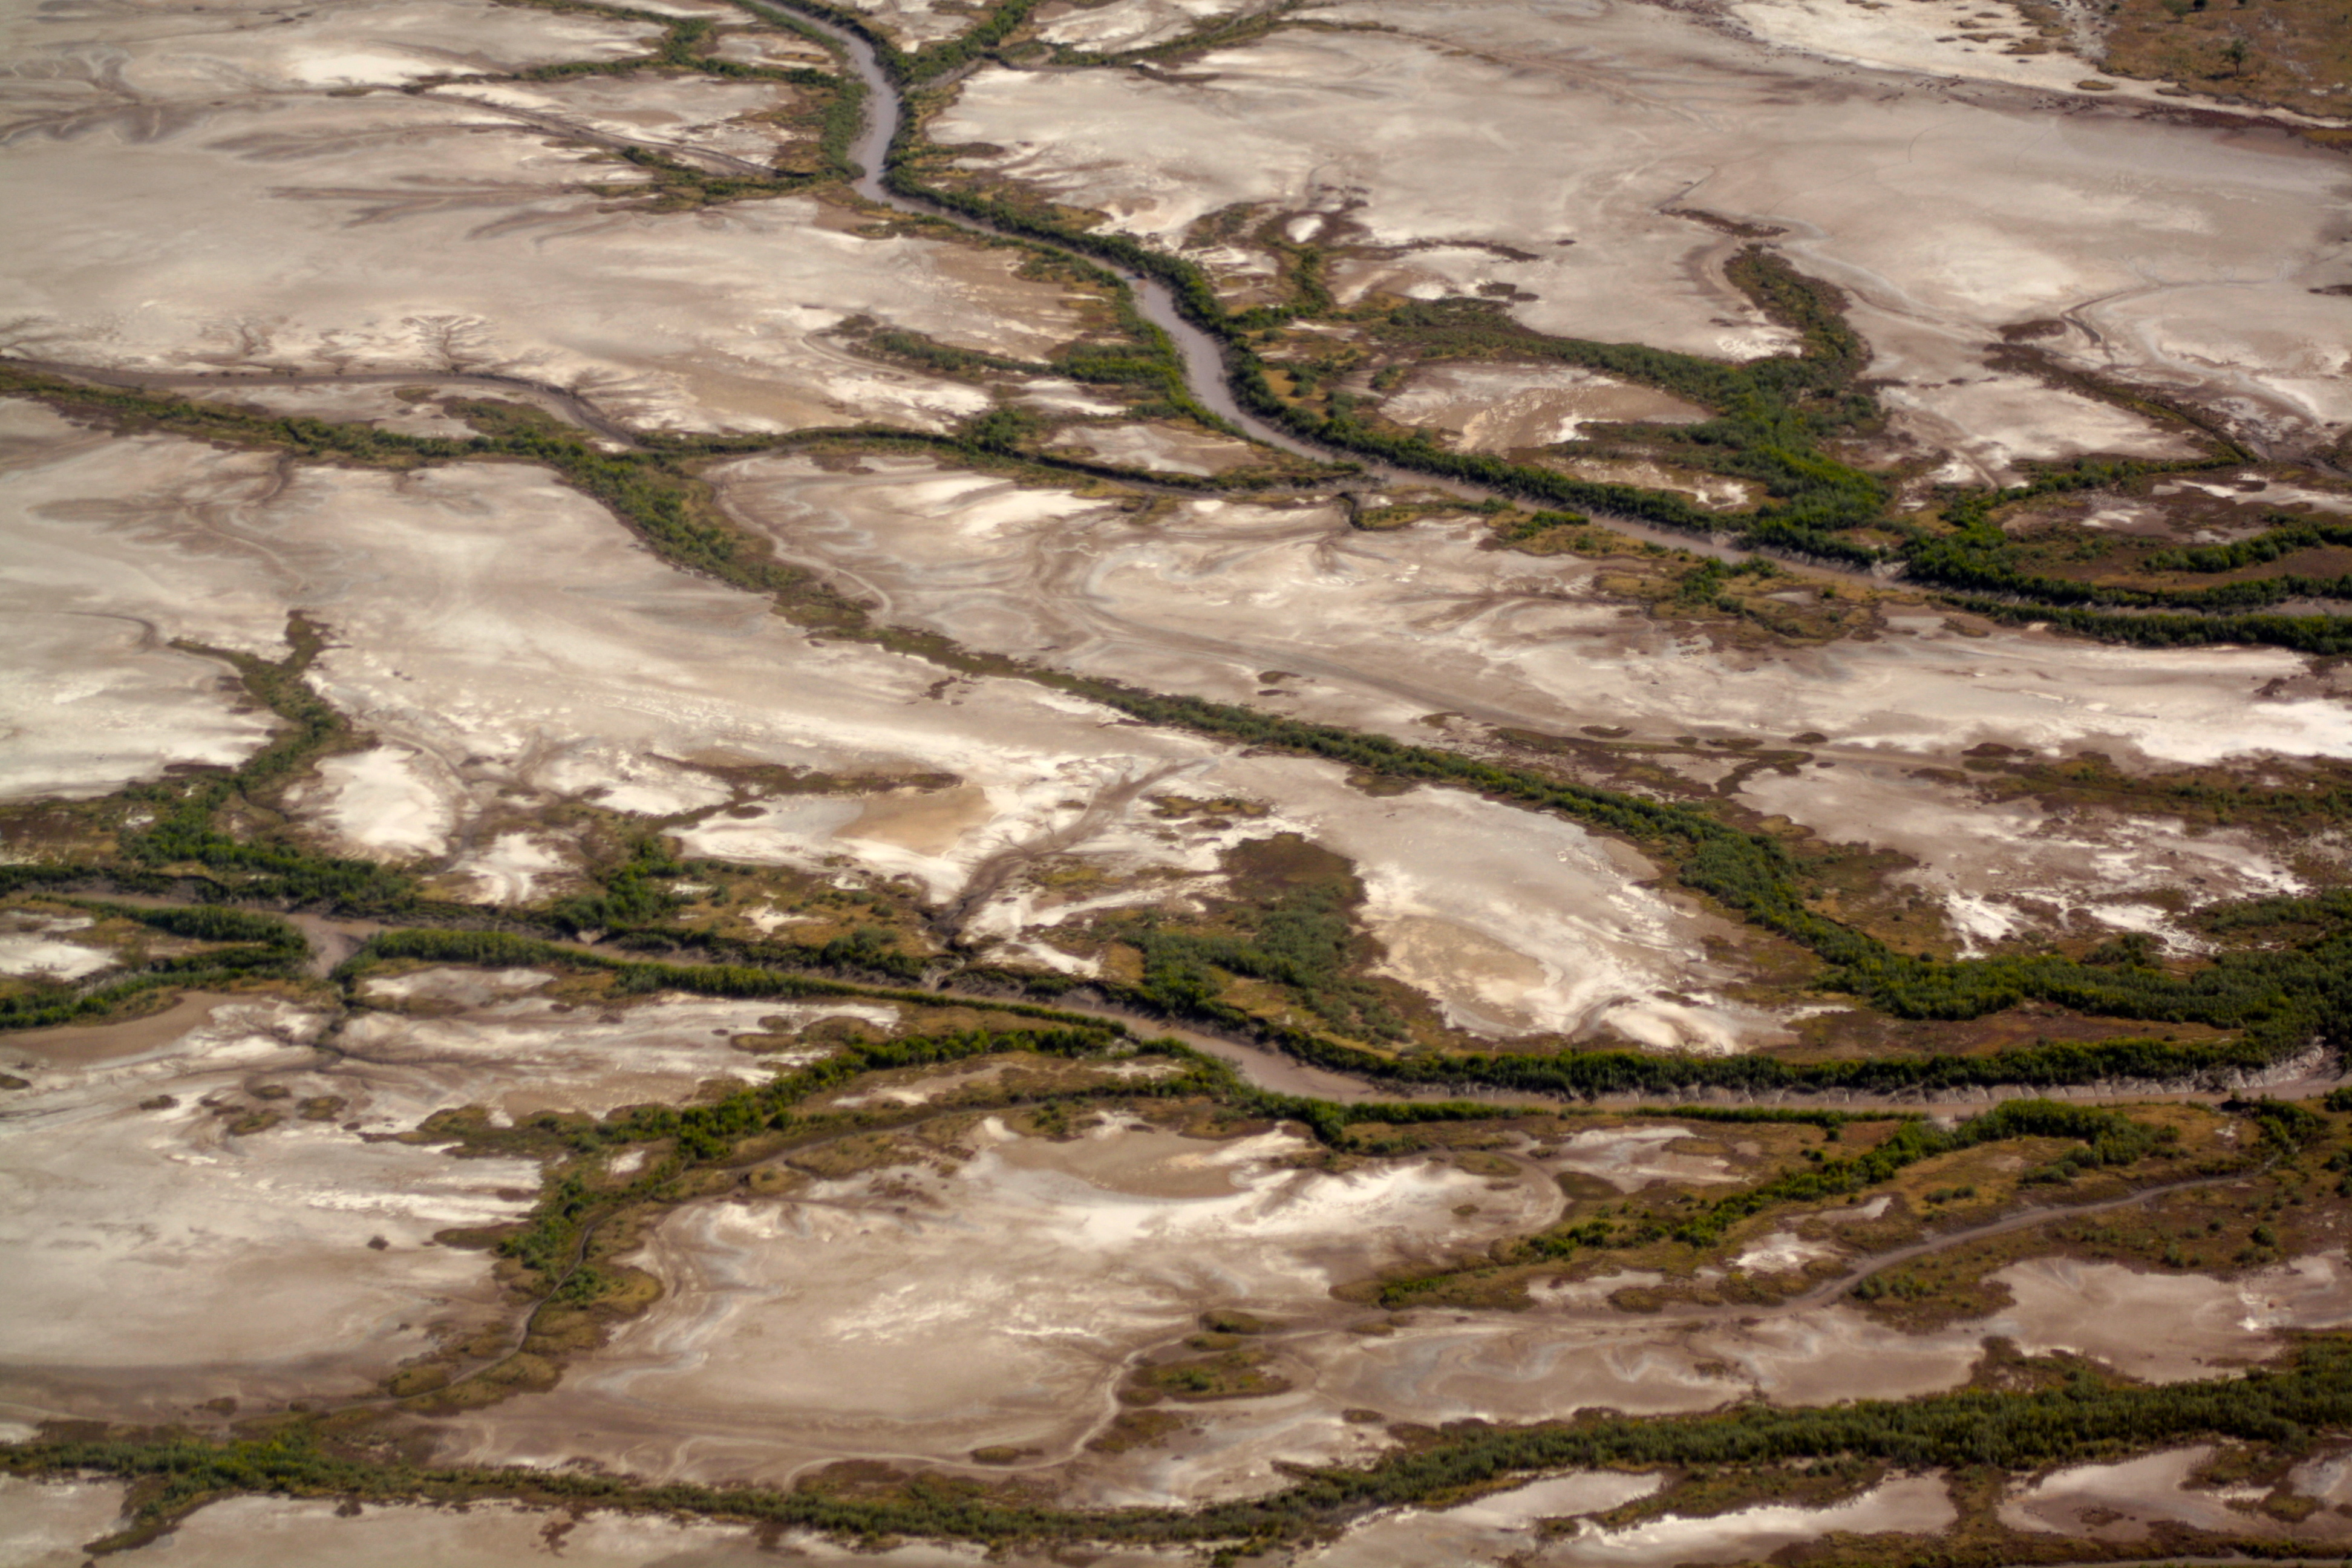 Floodplain patterns